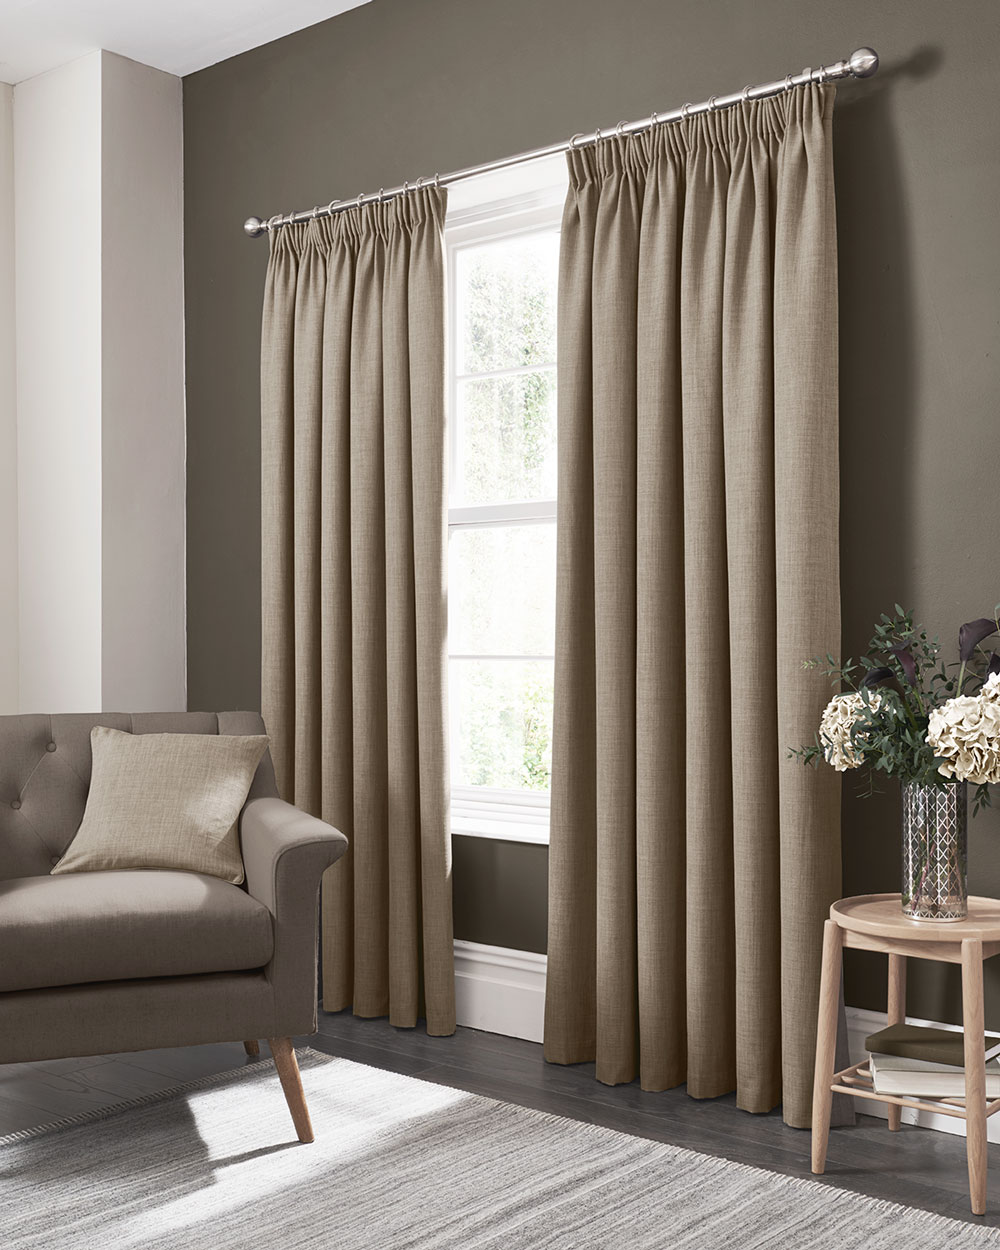 Studio G Elba Pencil Pleat Curtains  Linen Ready Made Curtains - Product code: M1105/03/90X7